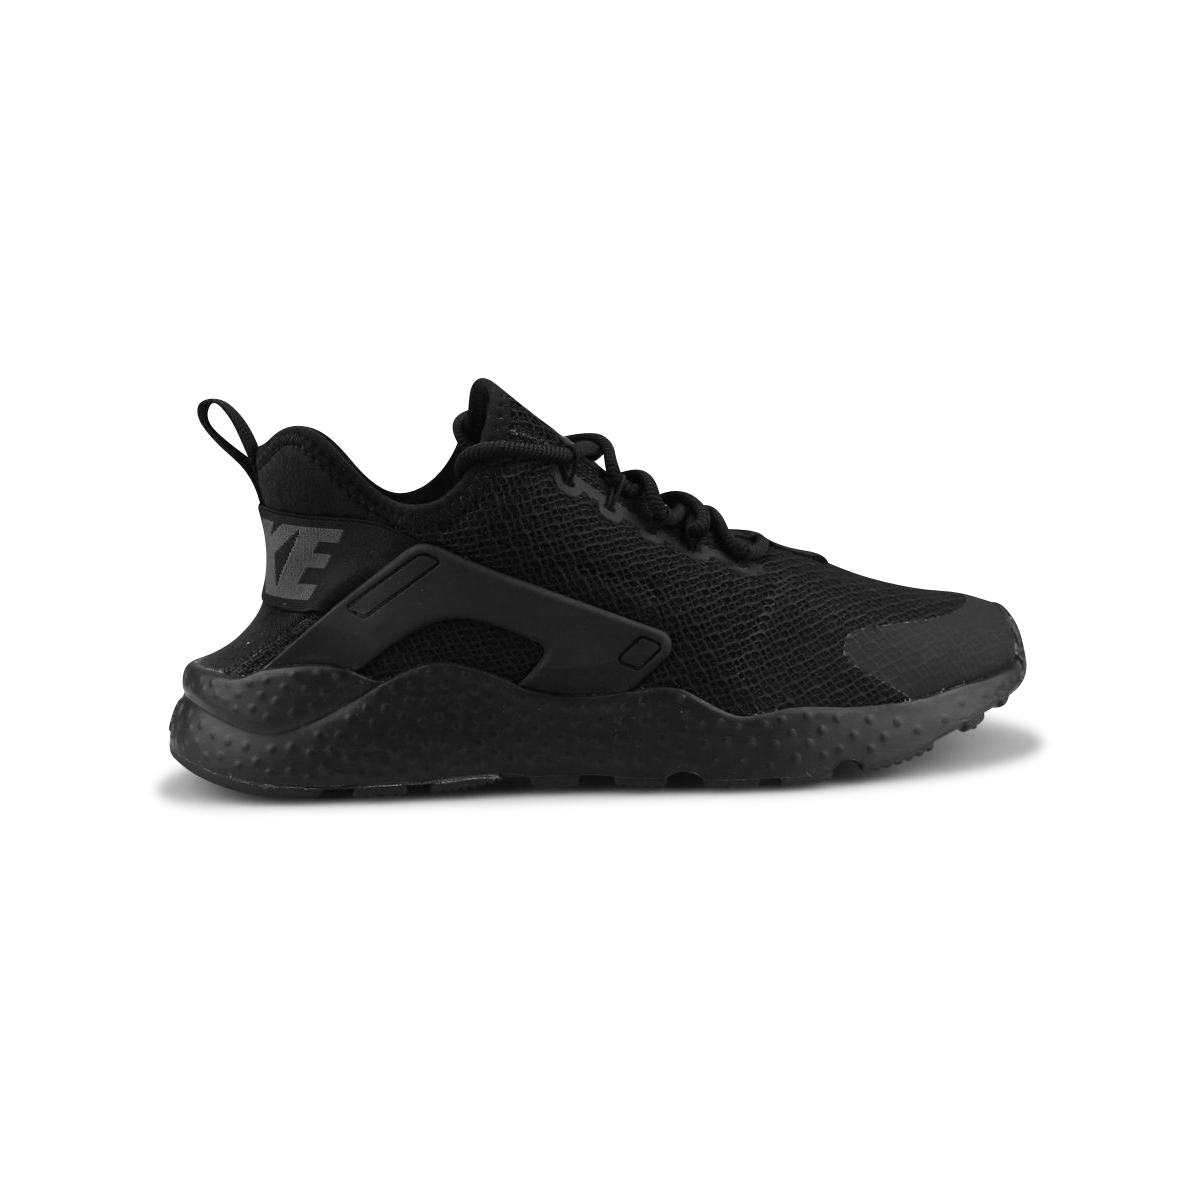 Nike Baskets basses Air Huarache Noir hGmWLSmIM